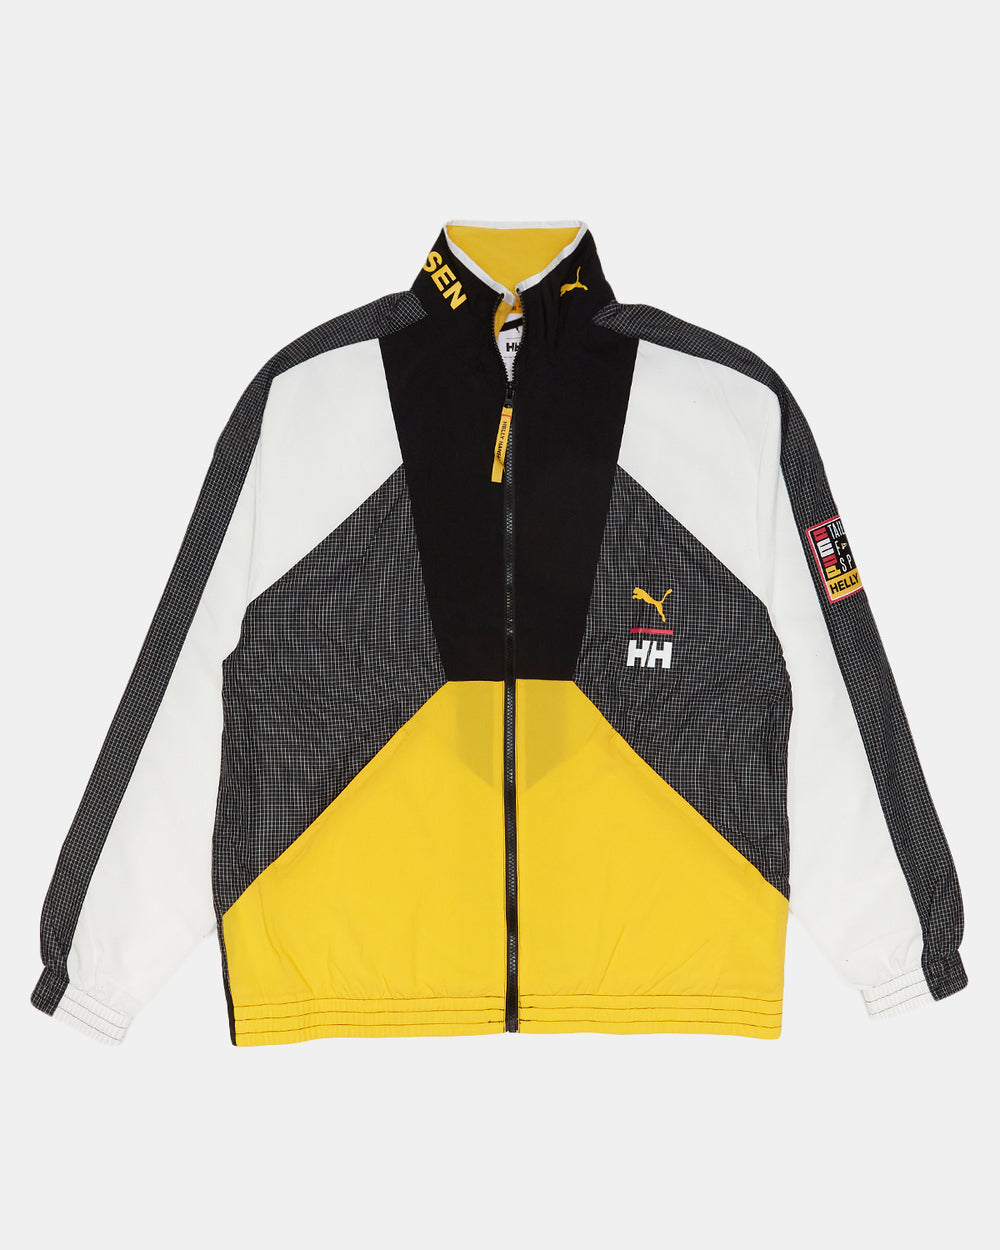 Puma - Puma x Helly Hansen Tailored for Sport Track Jacket (Citrus)